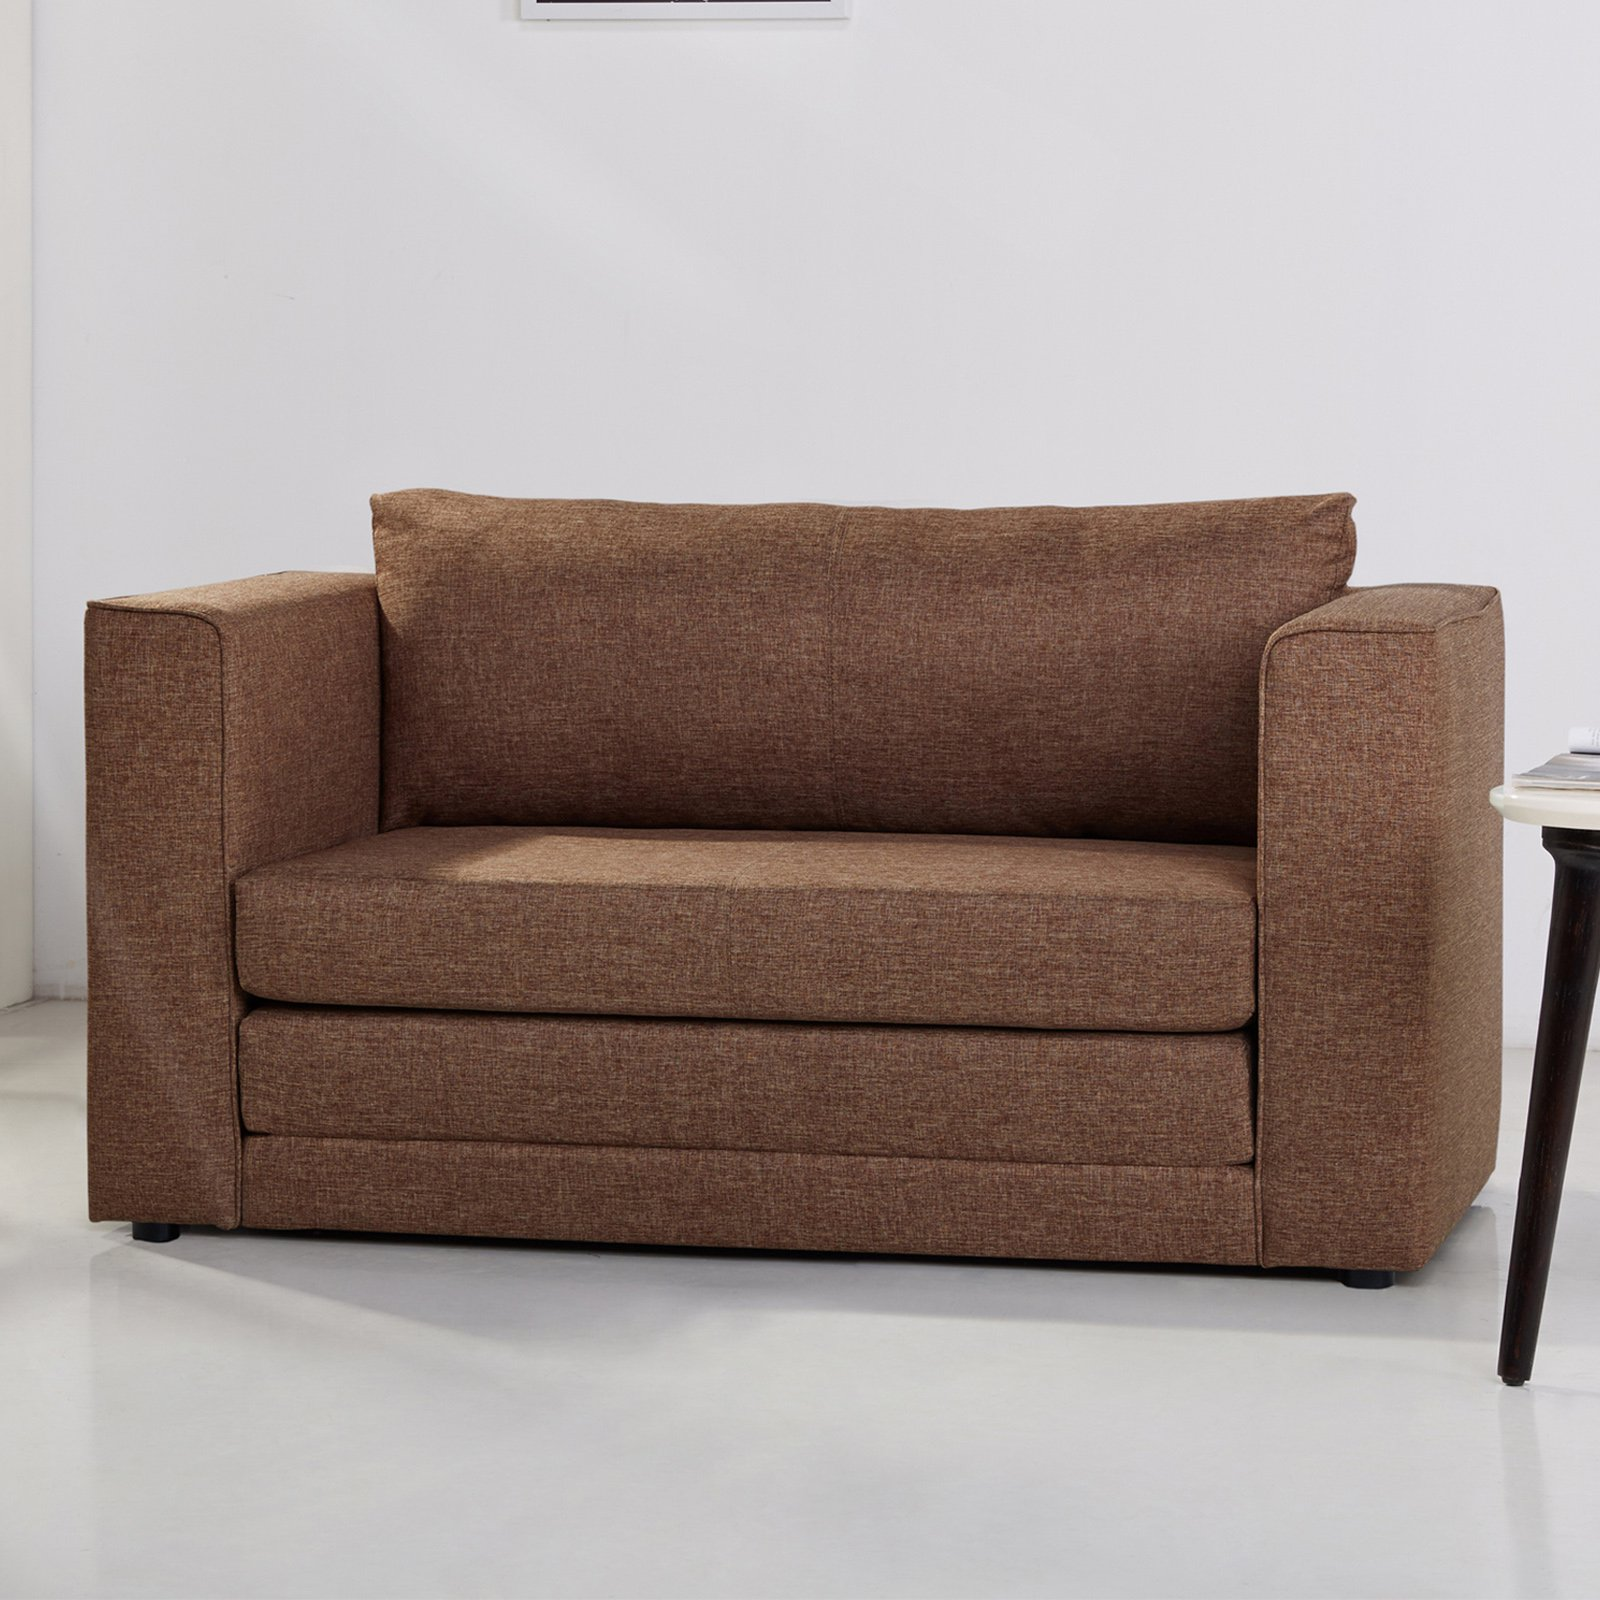 Admirable Gold Sparrow Corona Convertible Sleeper Loveseat Caraccident5 Cool Chair Designs And Ideas Caraccident5Info